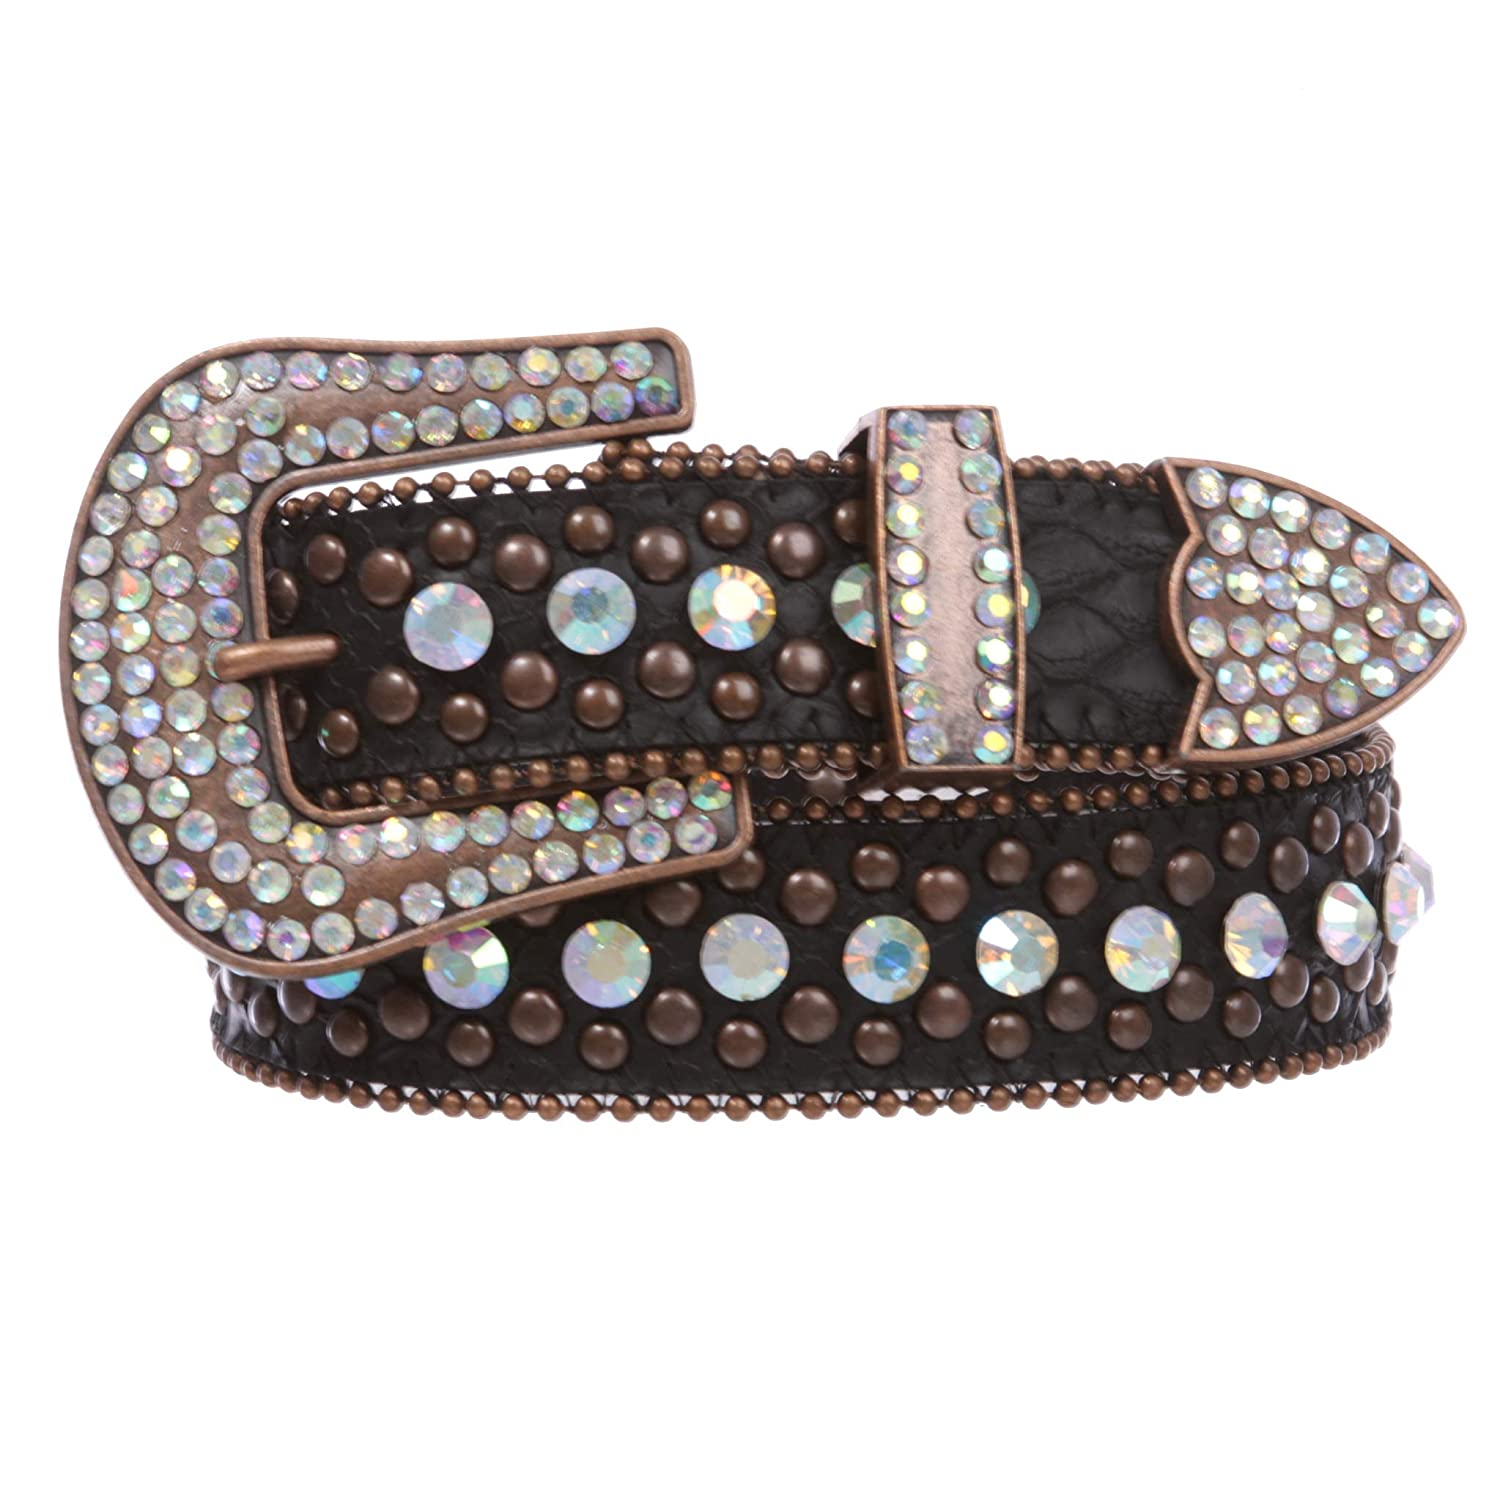 Bronze Women's Western Cowgirl Alligator Rhinestone Studded Leather Belt, Brown   m l 34 37